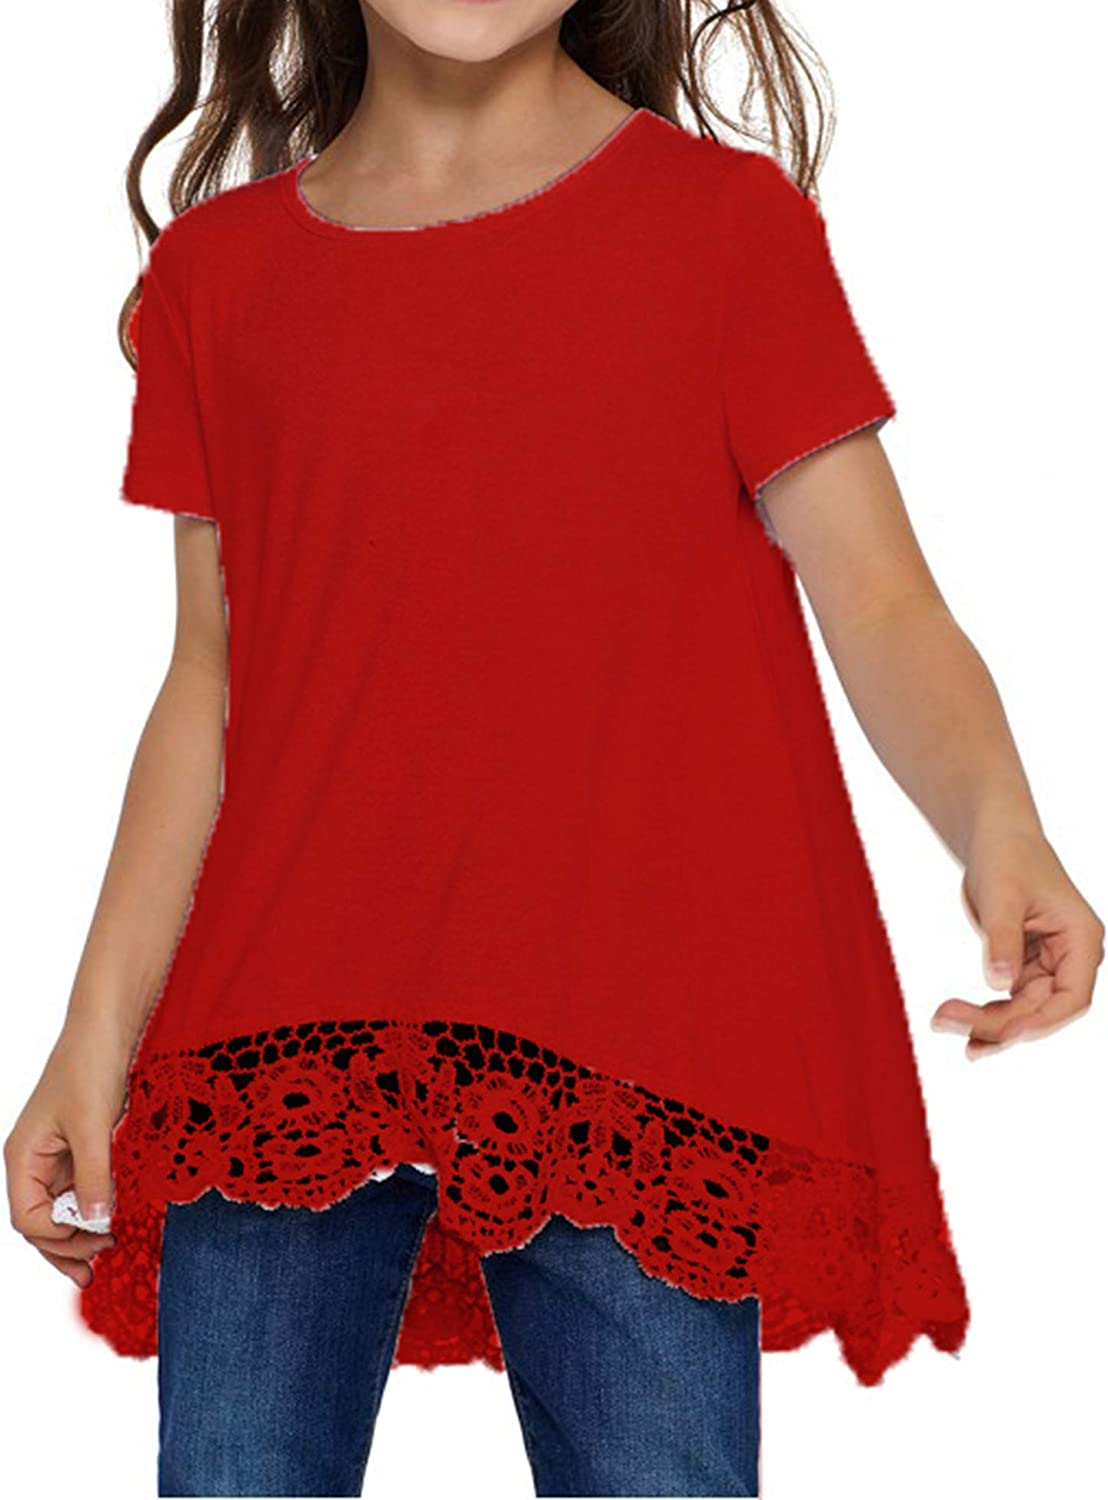 Jorssar Girls Tie Dye Clothes Kids Casual Tunic Tops Loose Blouses T-Shirt Size 5-12 Years: Clothing